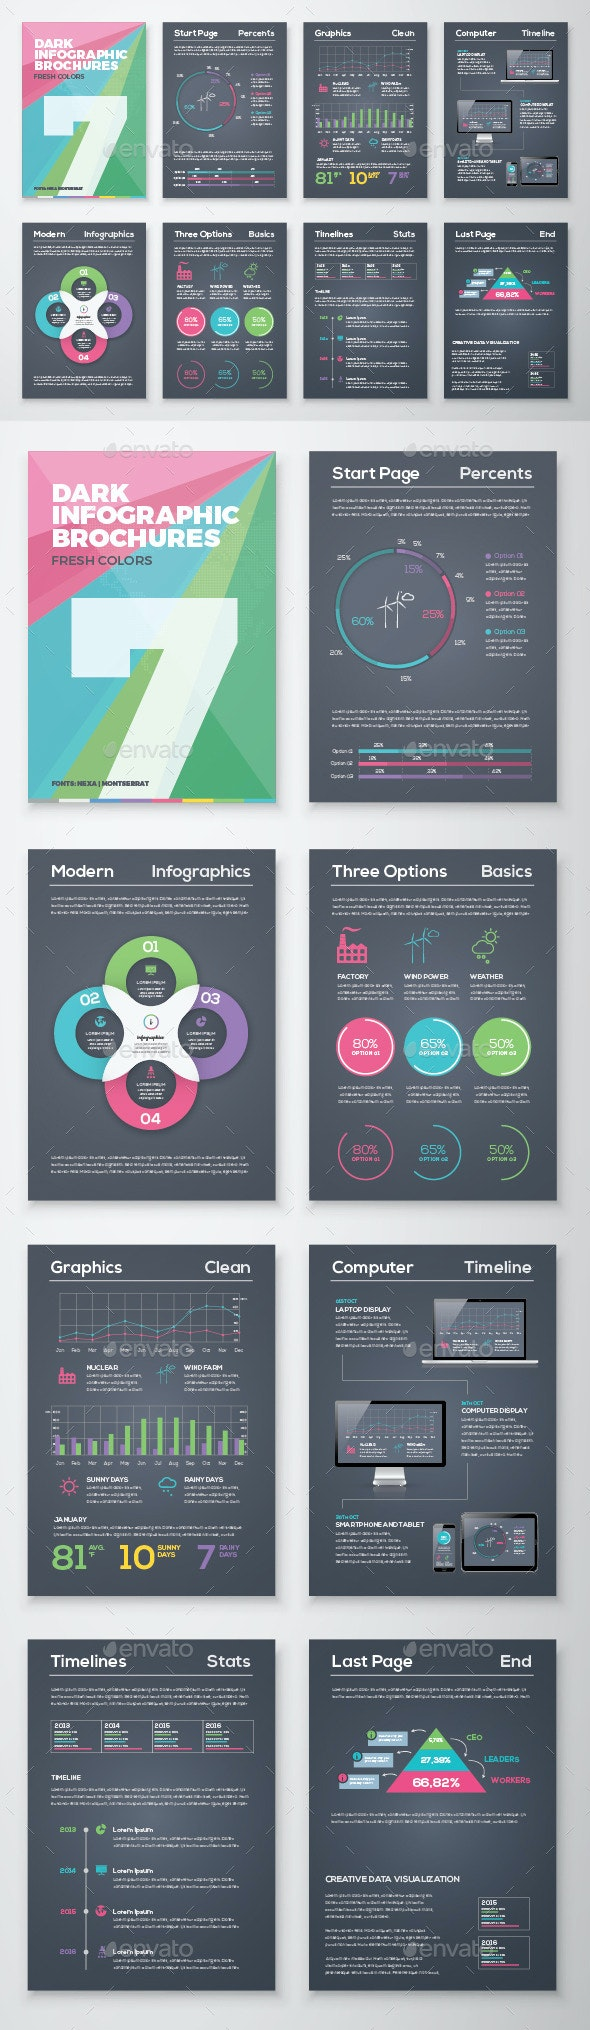 Dark Infographic Brochure Vector Elements Kit 7 - Infographics